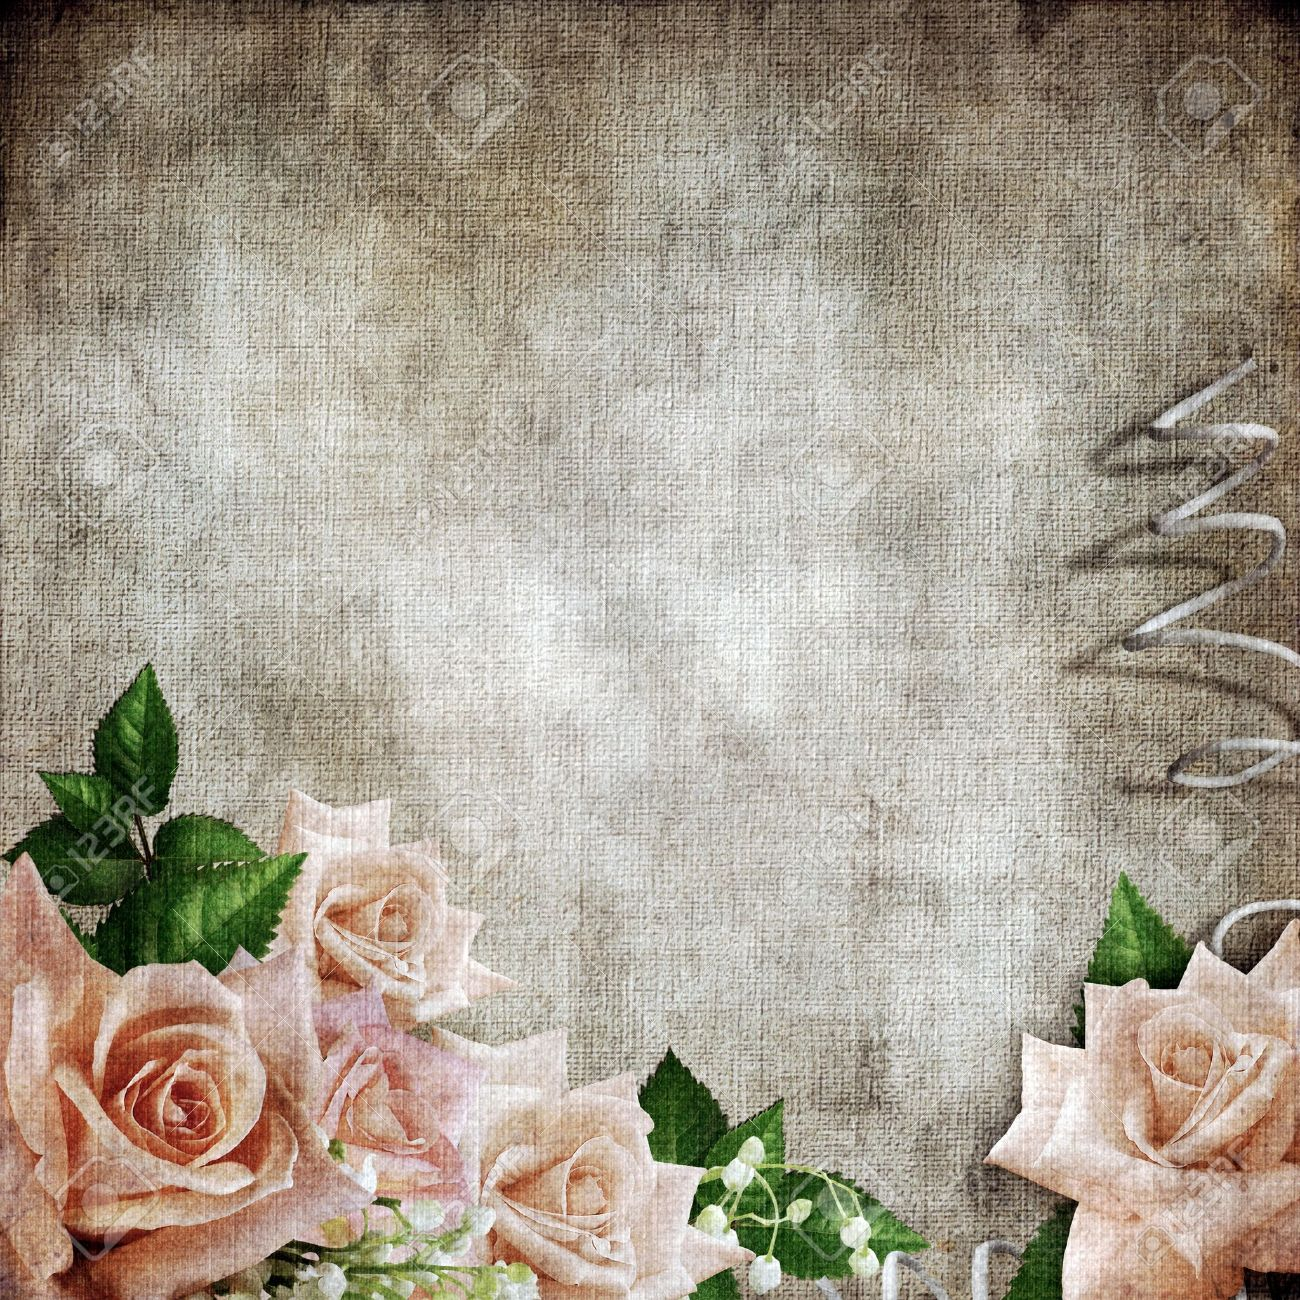 wedding vintage romantic background with roses stock photo picture and royalty free image image 12148544 wedding vintage romantic background with roses